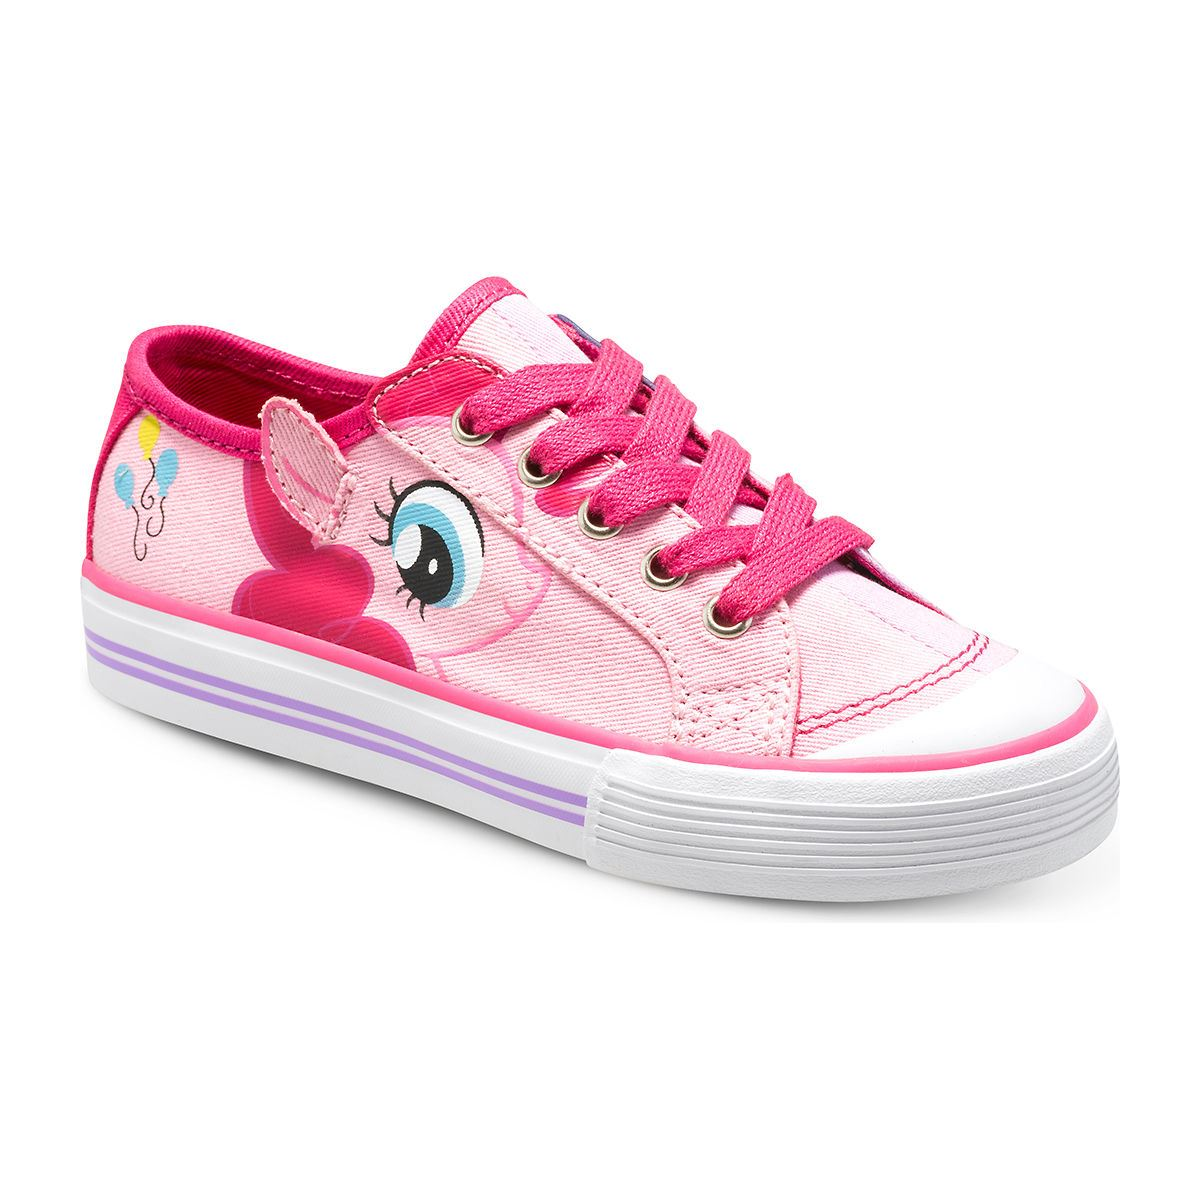 Shop for and buy pony sneakers online at Macy's. Find pony sneakers at Macy's.